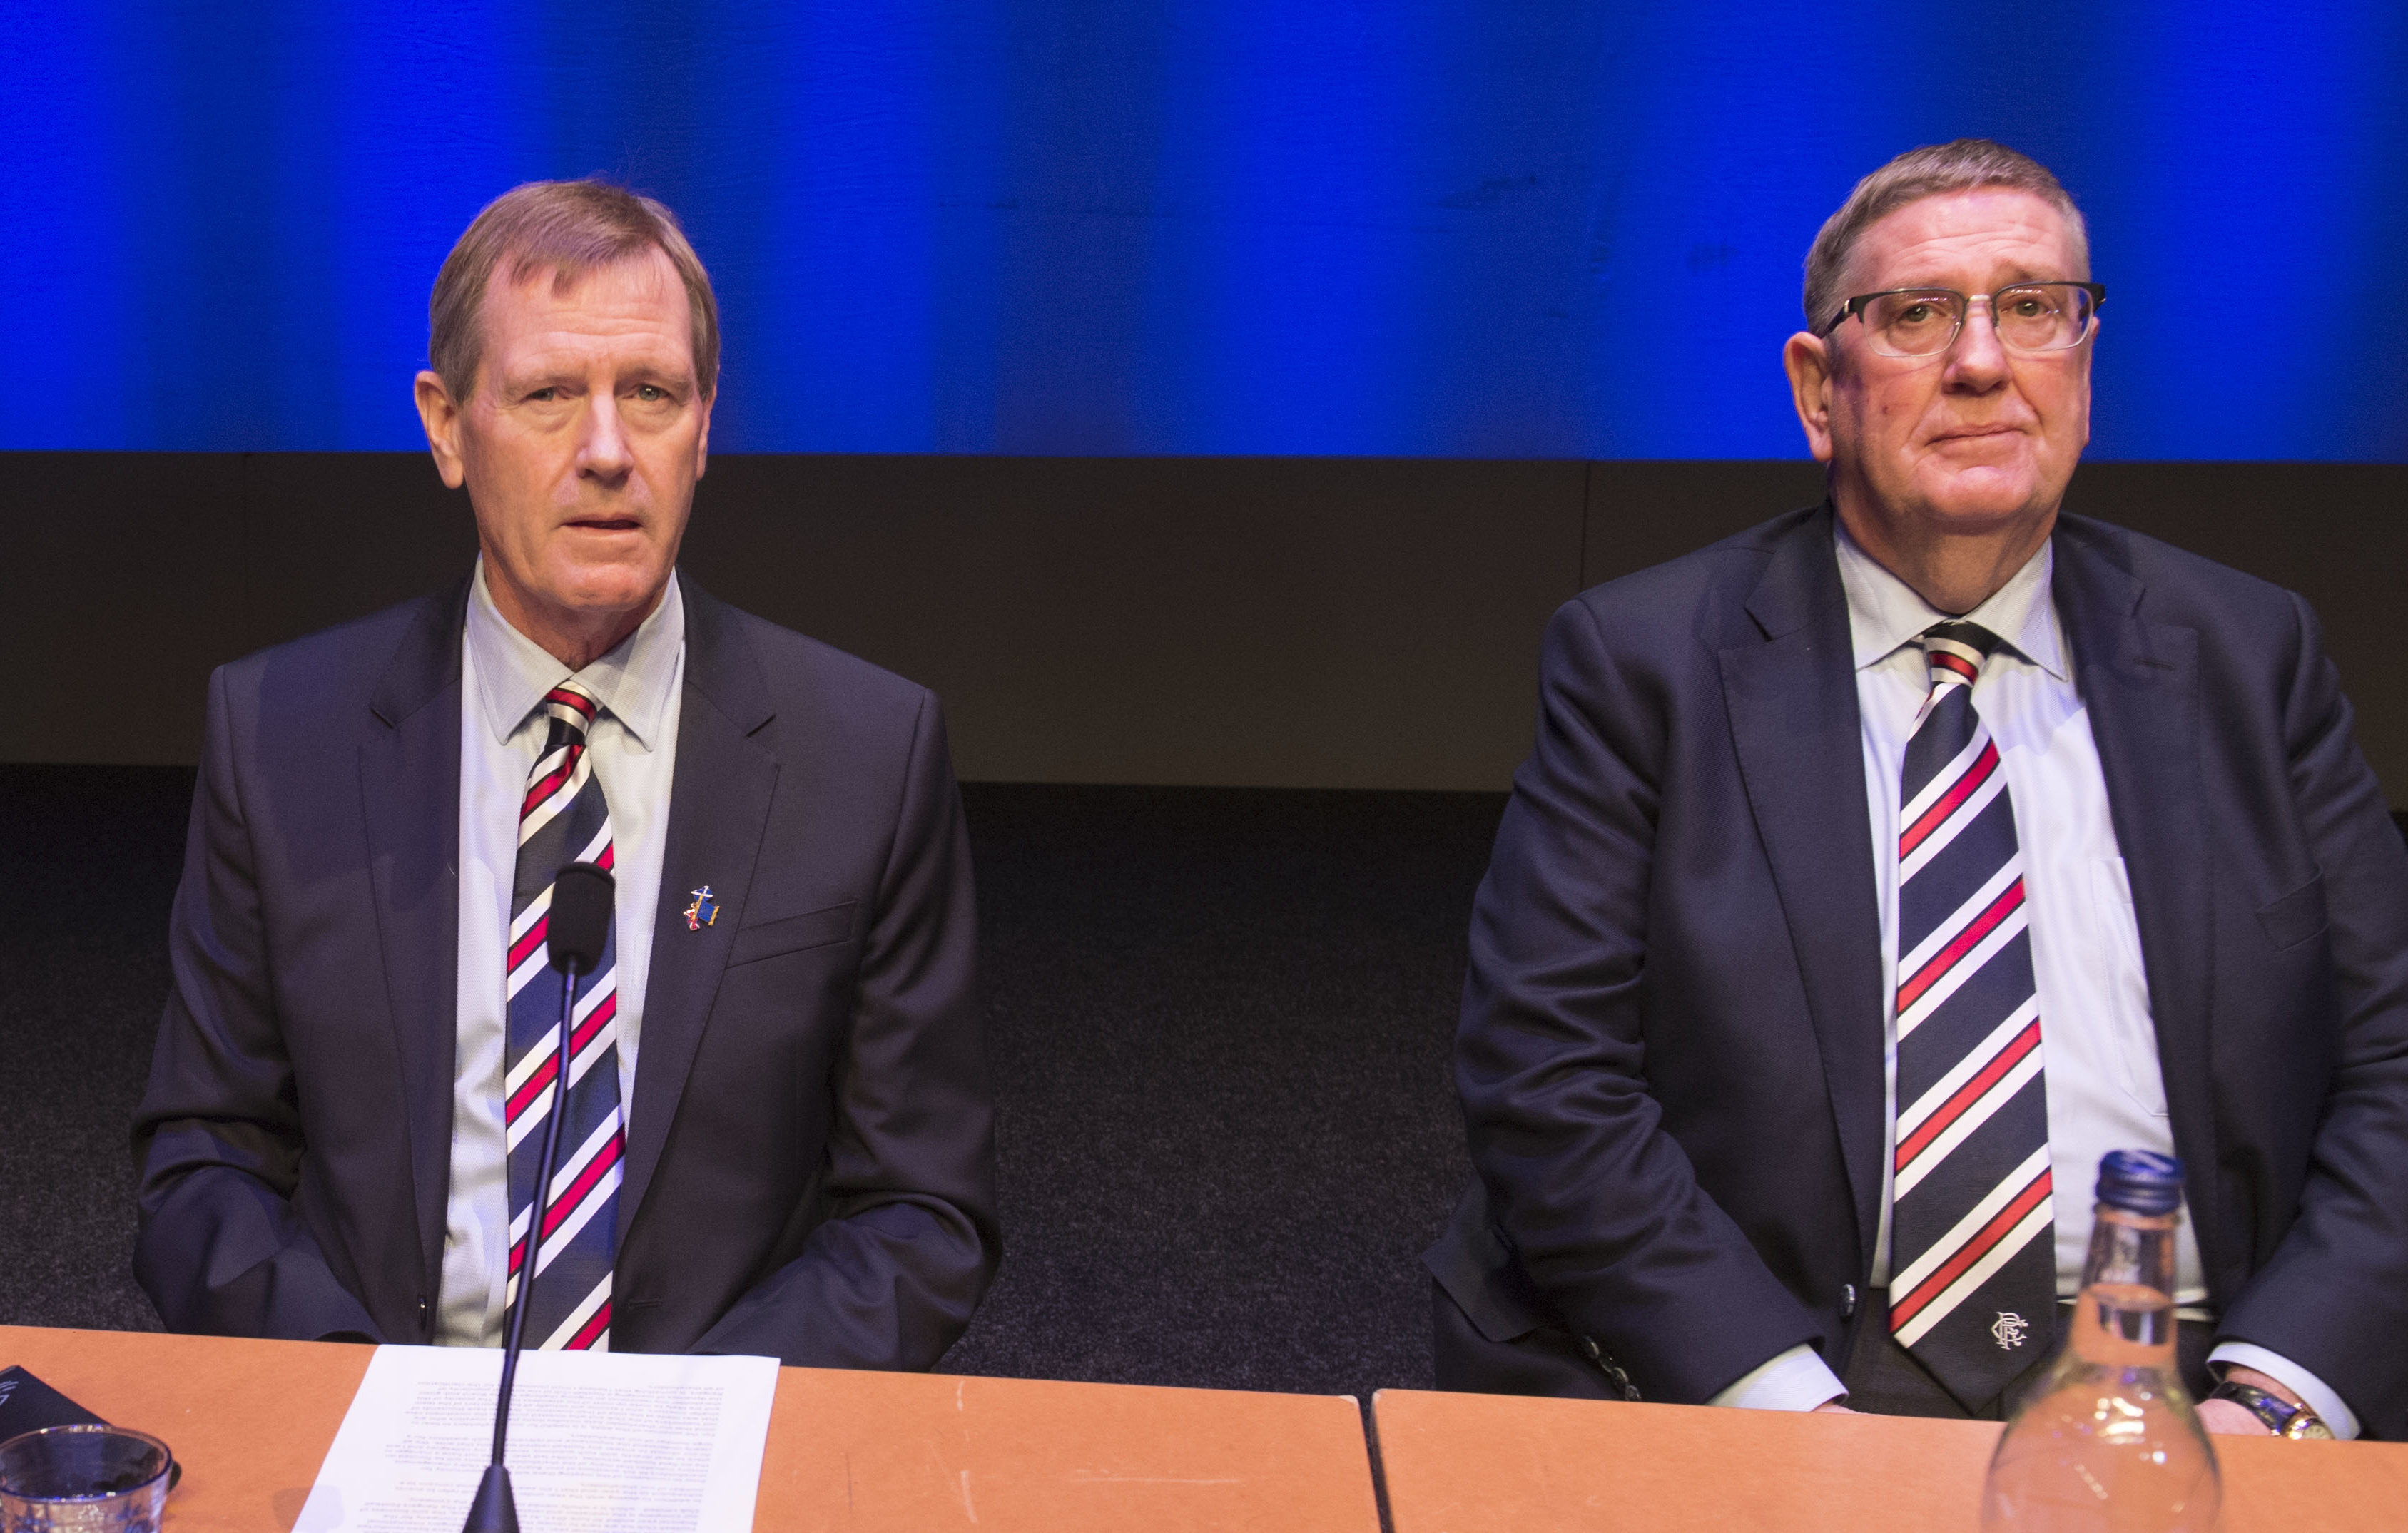 Dave King and Douglas Park (SNS Group / Bill Murray)